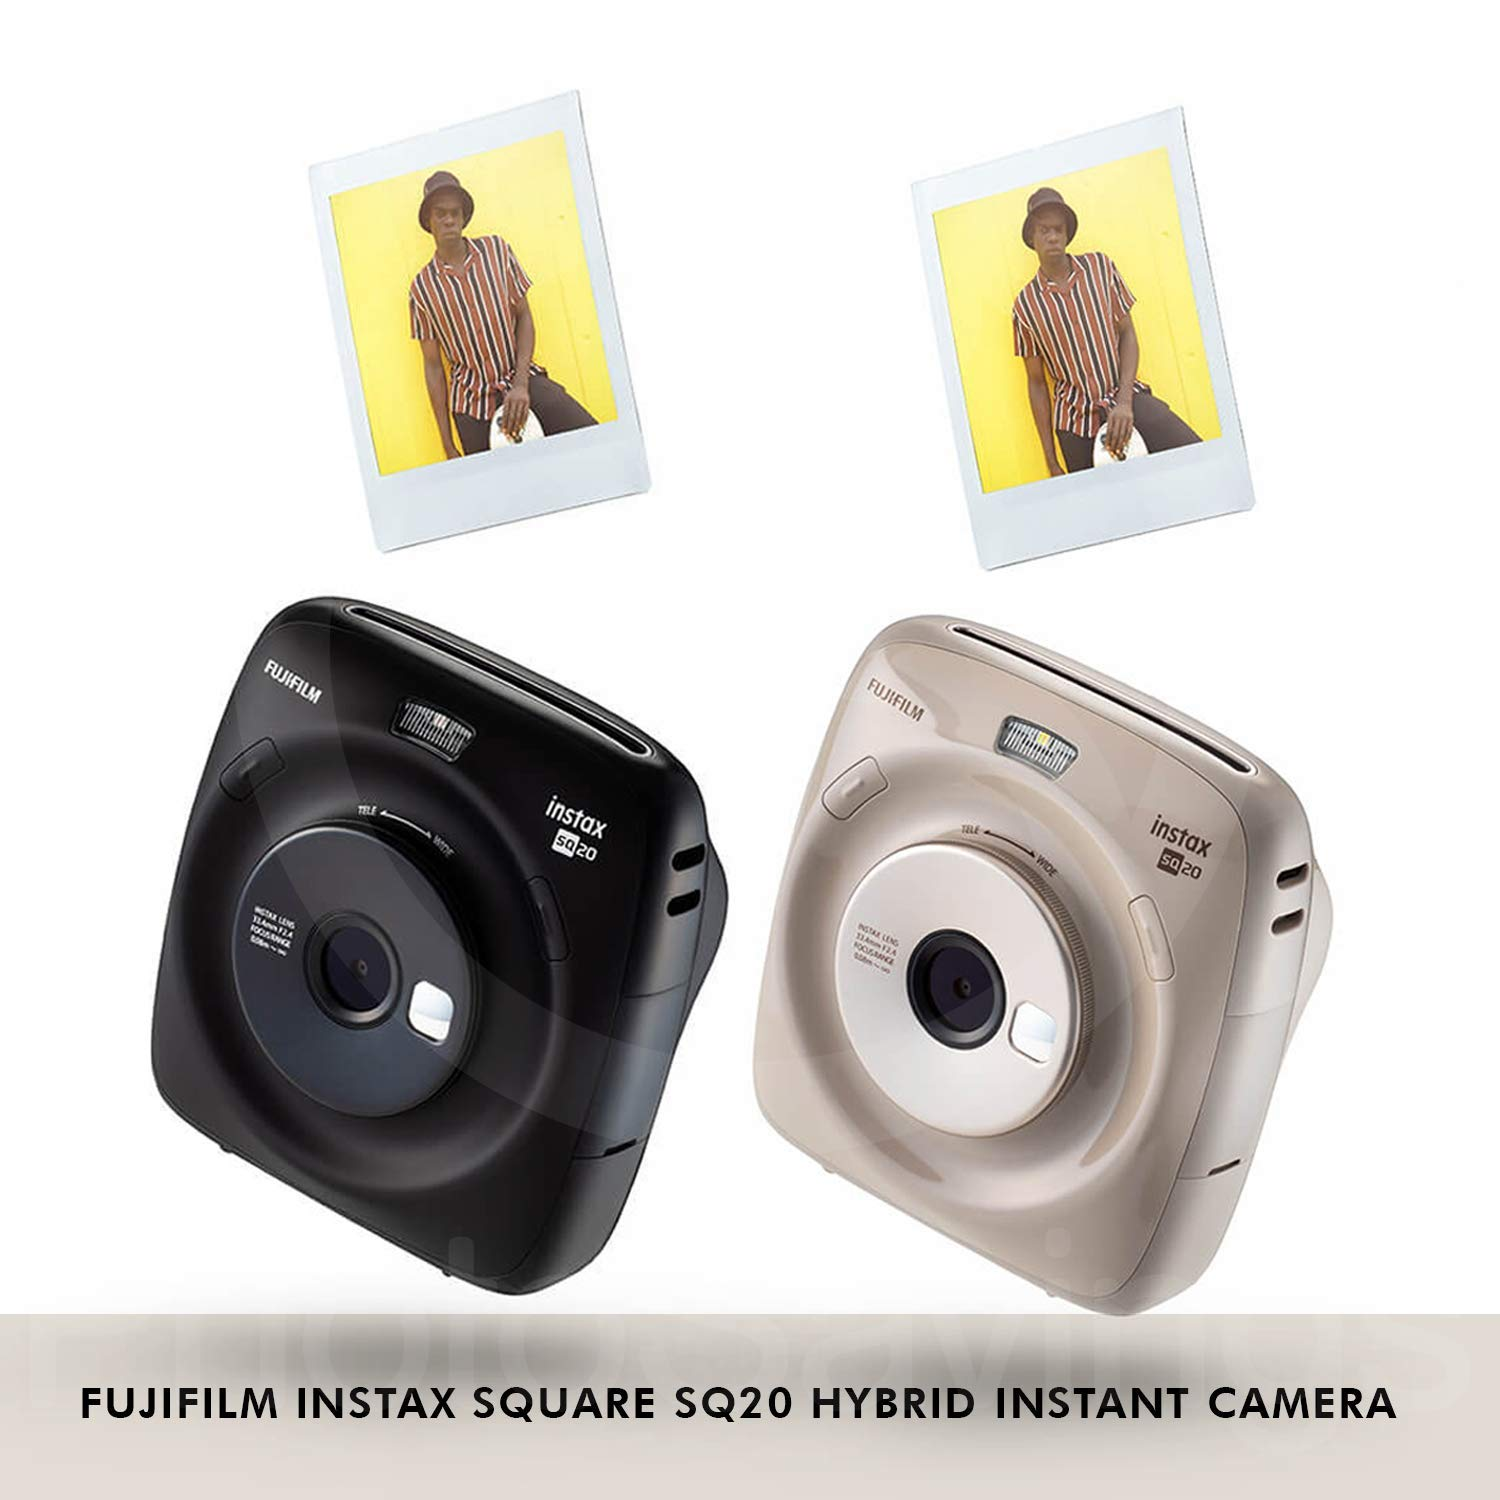 Fujifilm Instax Square SQ20 Hybrid Instant Camera (Black) - Deluxe Accessory Bundle with 40 Sheets of Instant Film + 16GB Micro sd Card + Case + Xpix Camera Strap and More. (USA Warrantty) by Fujifilm (Image #4)